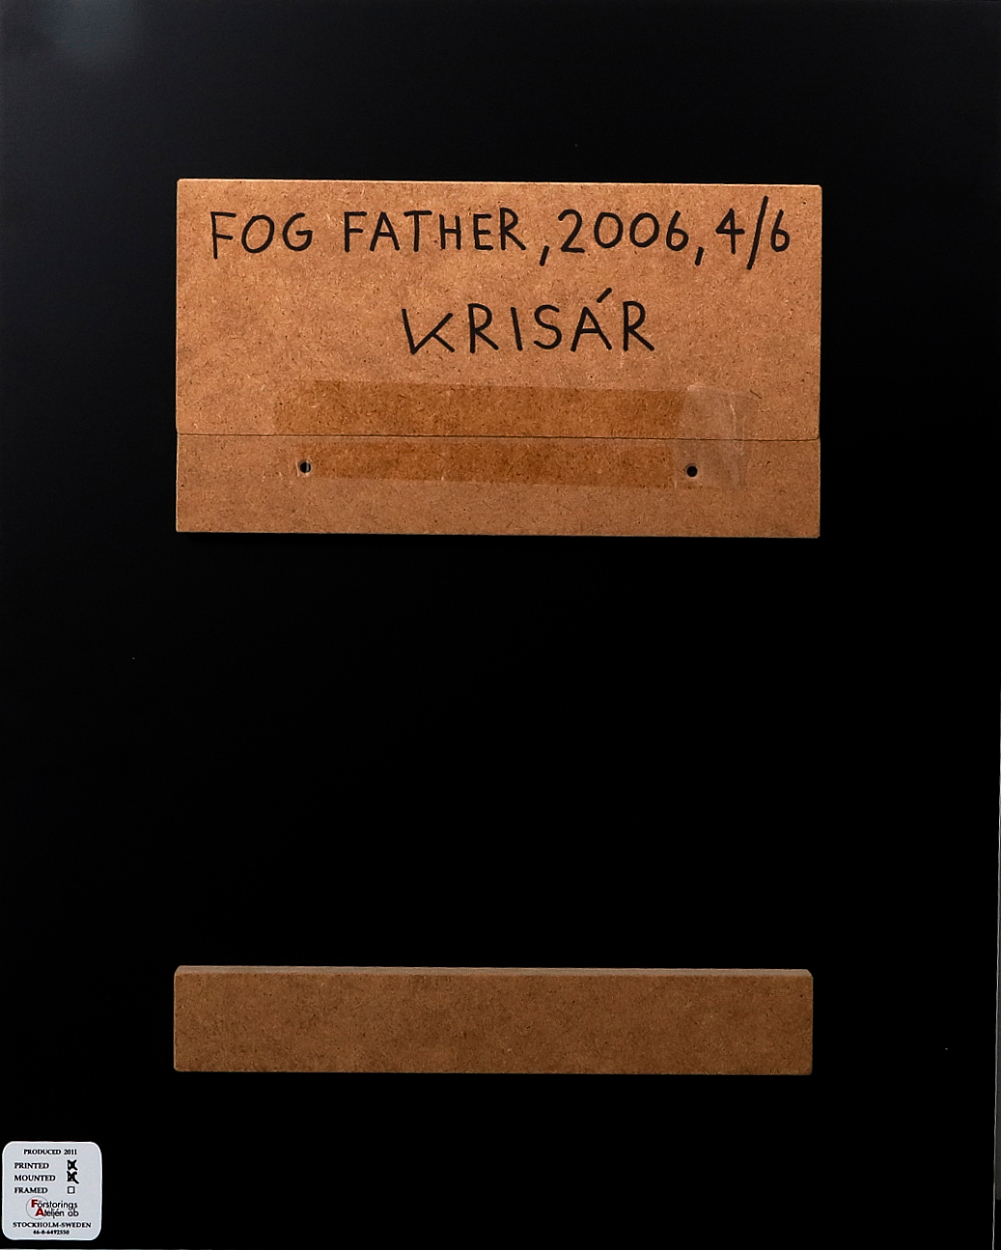 Anders Krisár, Fog father